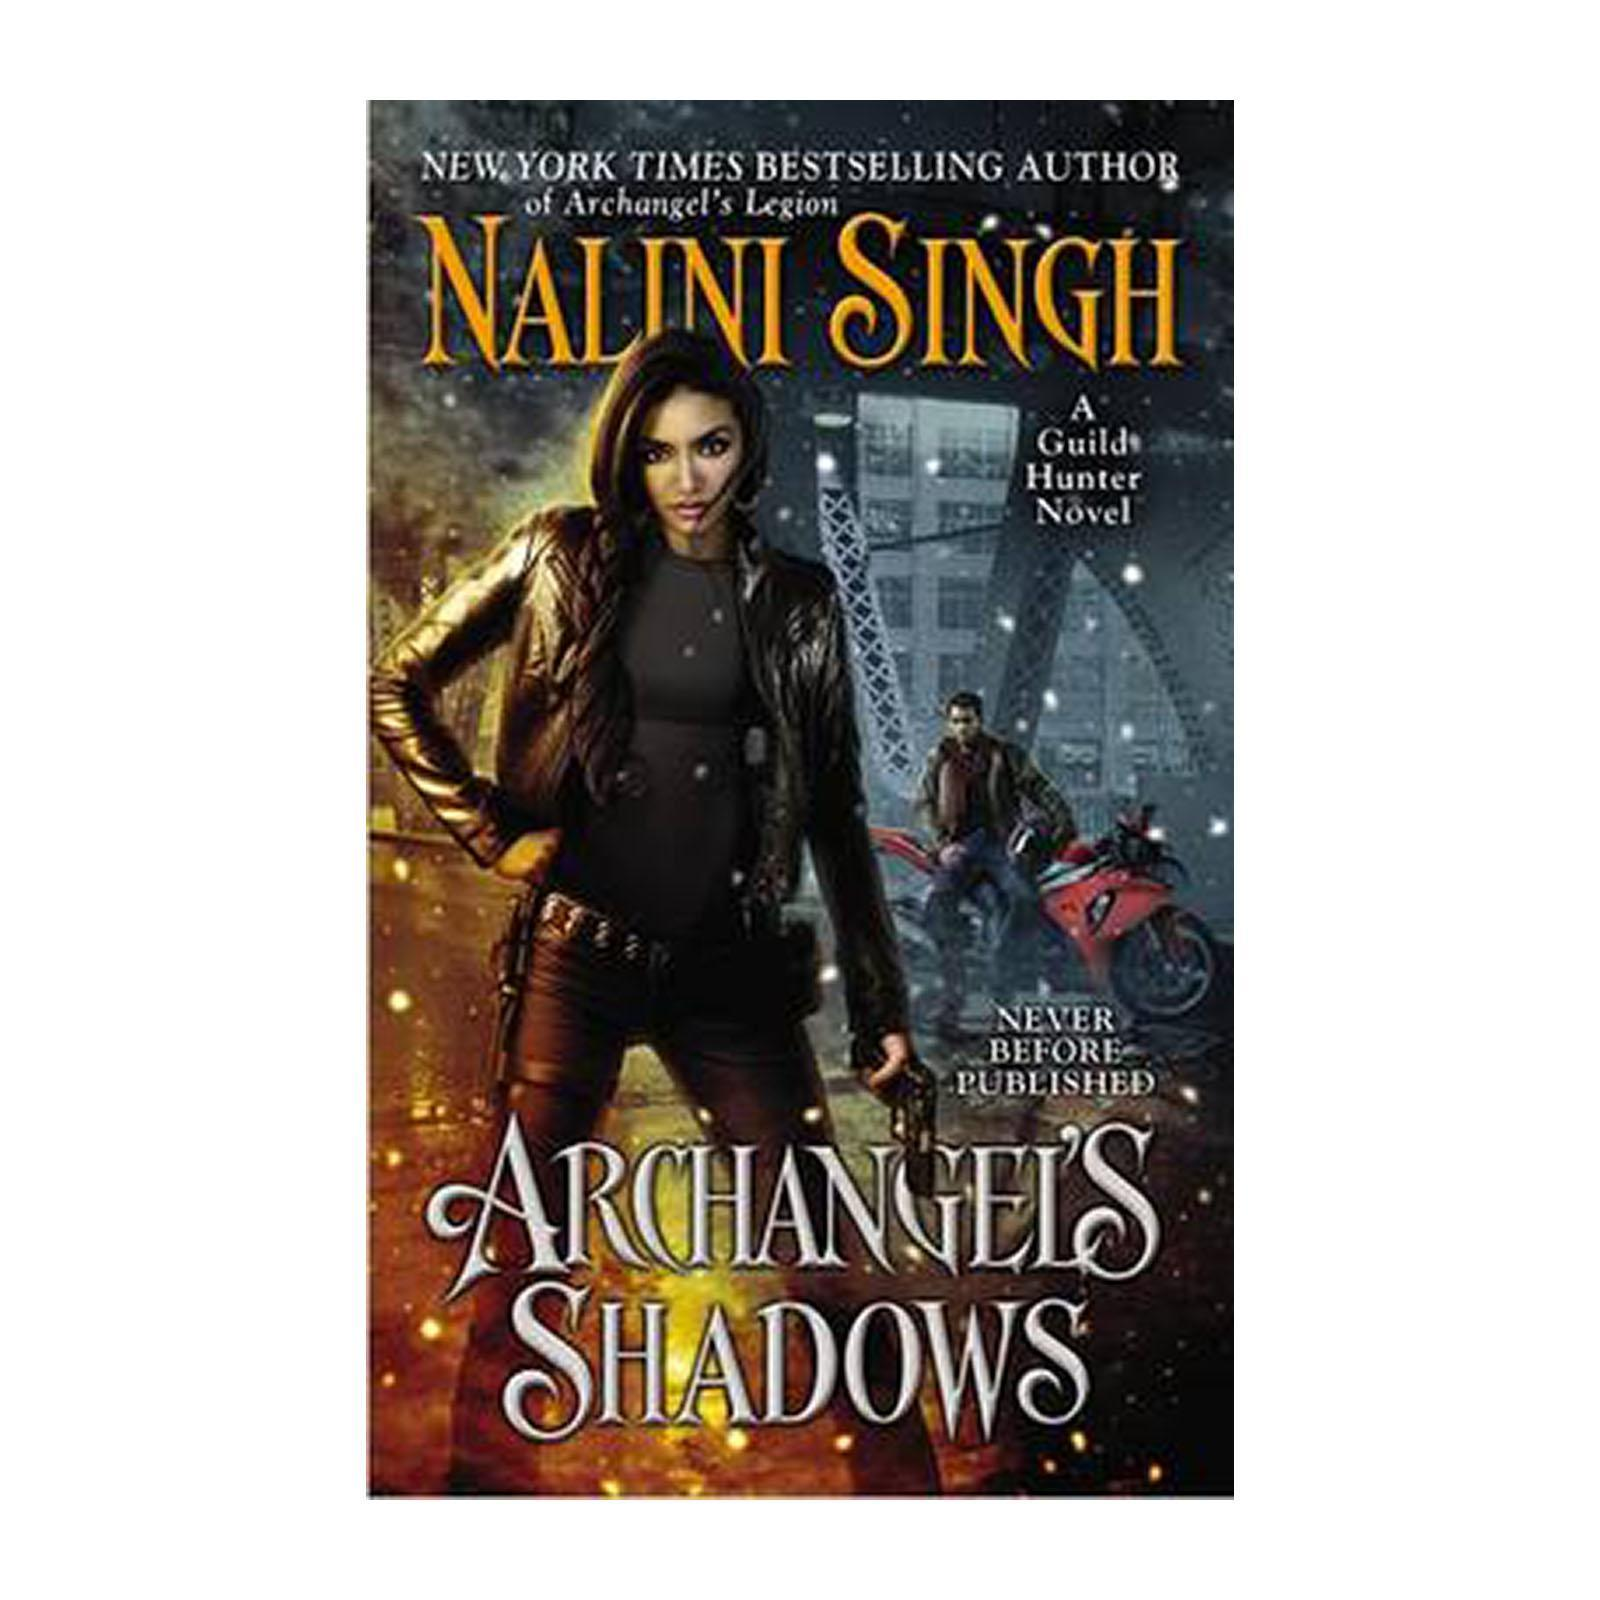 Archangels Shadows (Paperback)